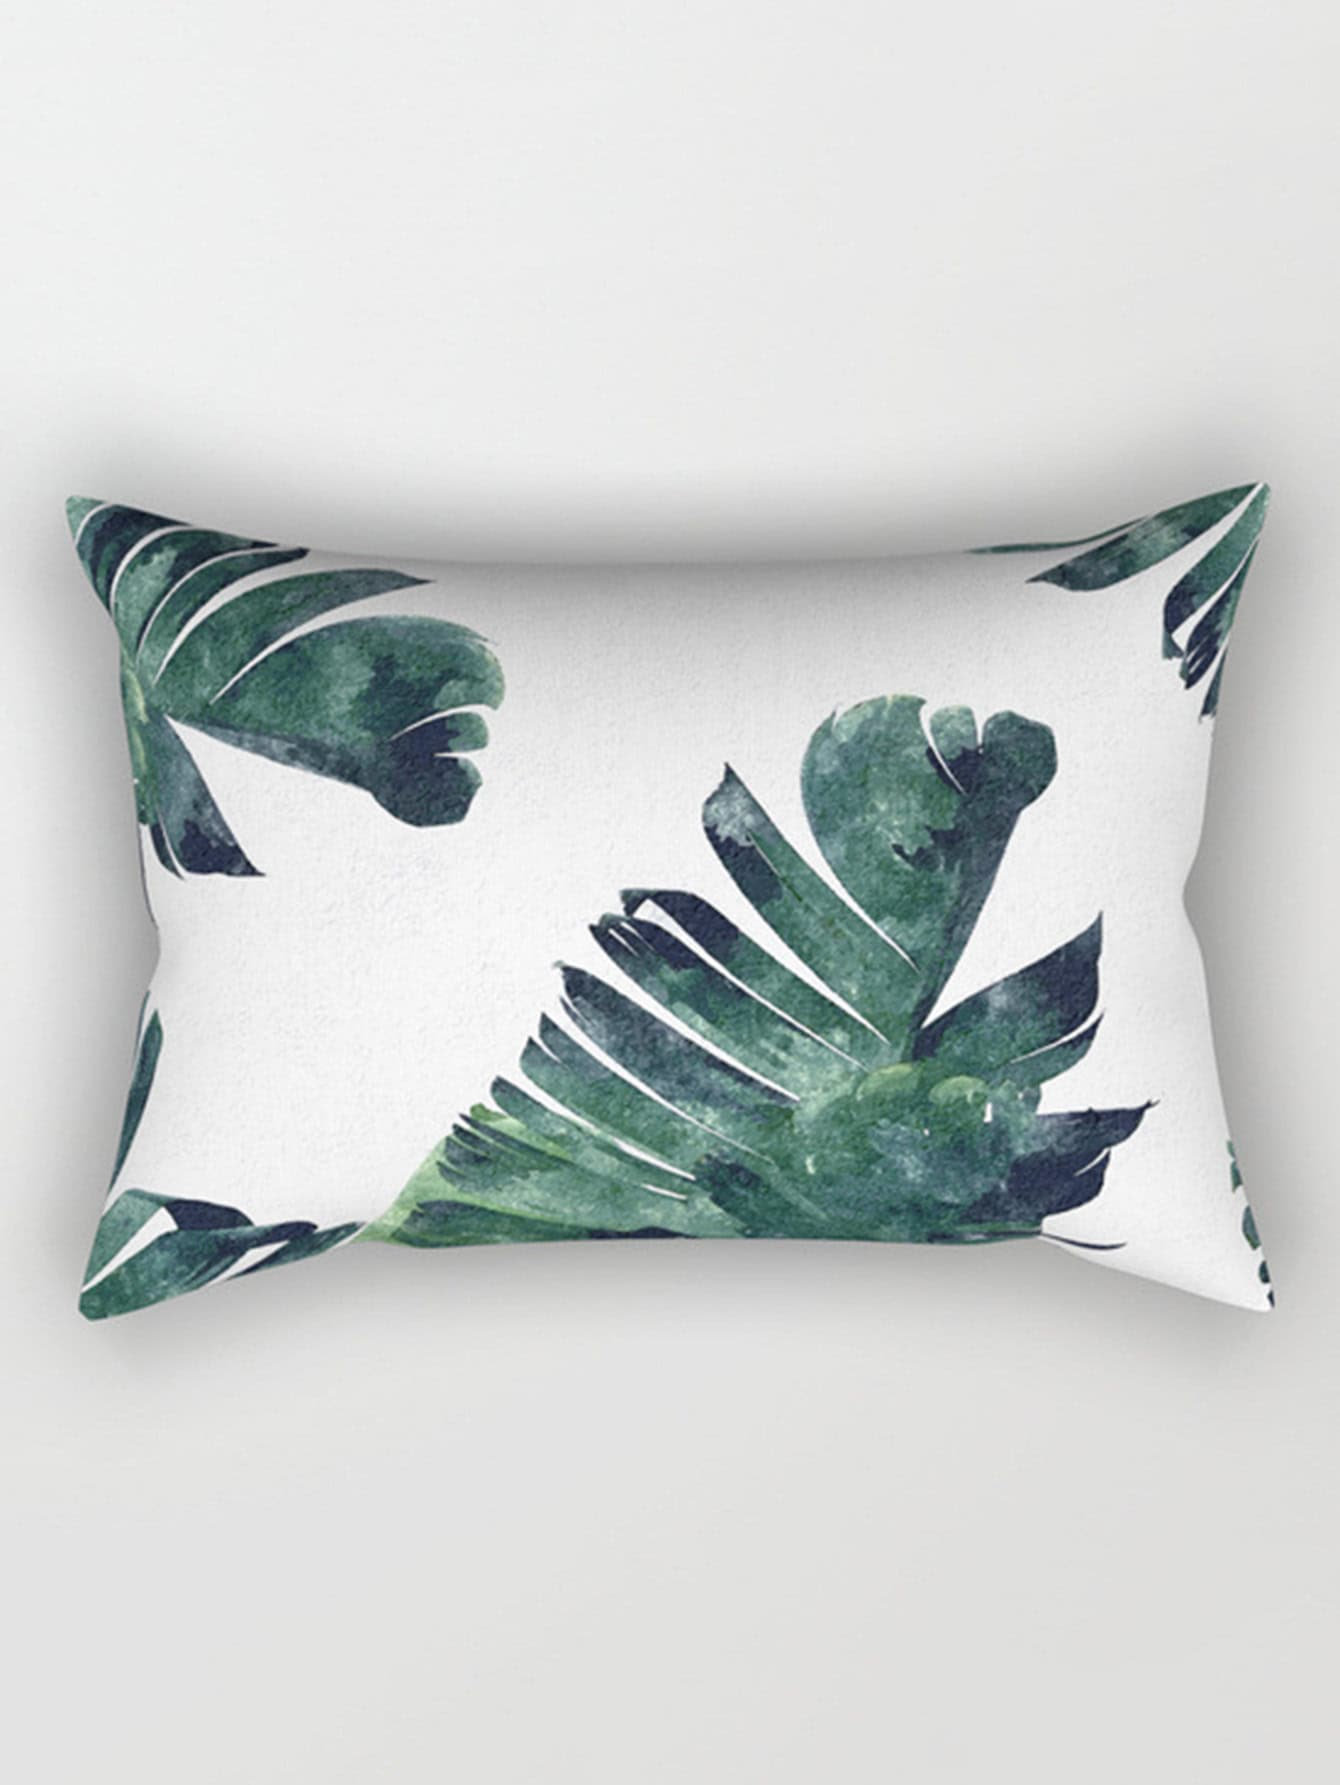 Leaf Print Pillow Case Cover handpainted birds and leaf branch printed pillow case